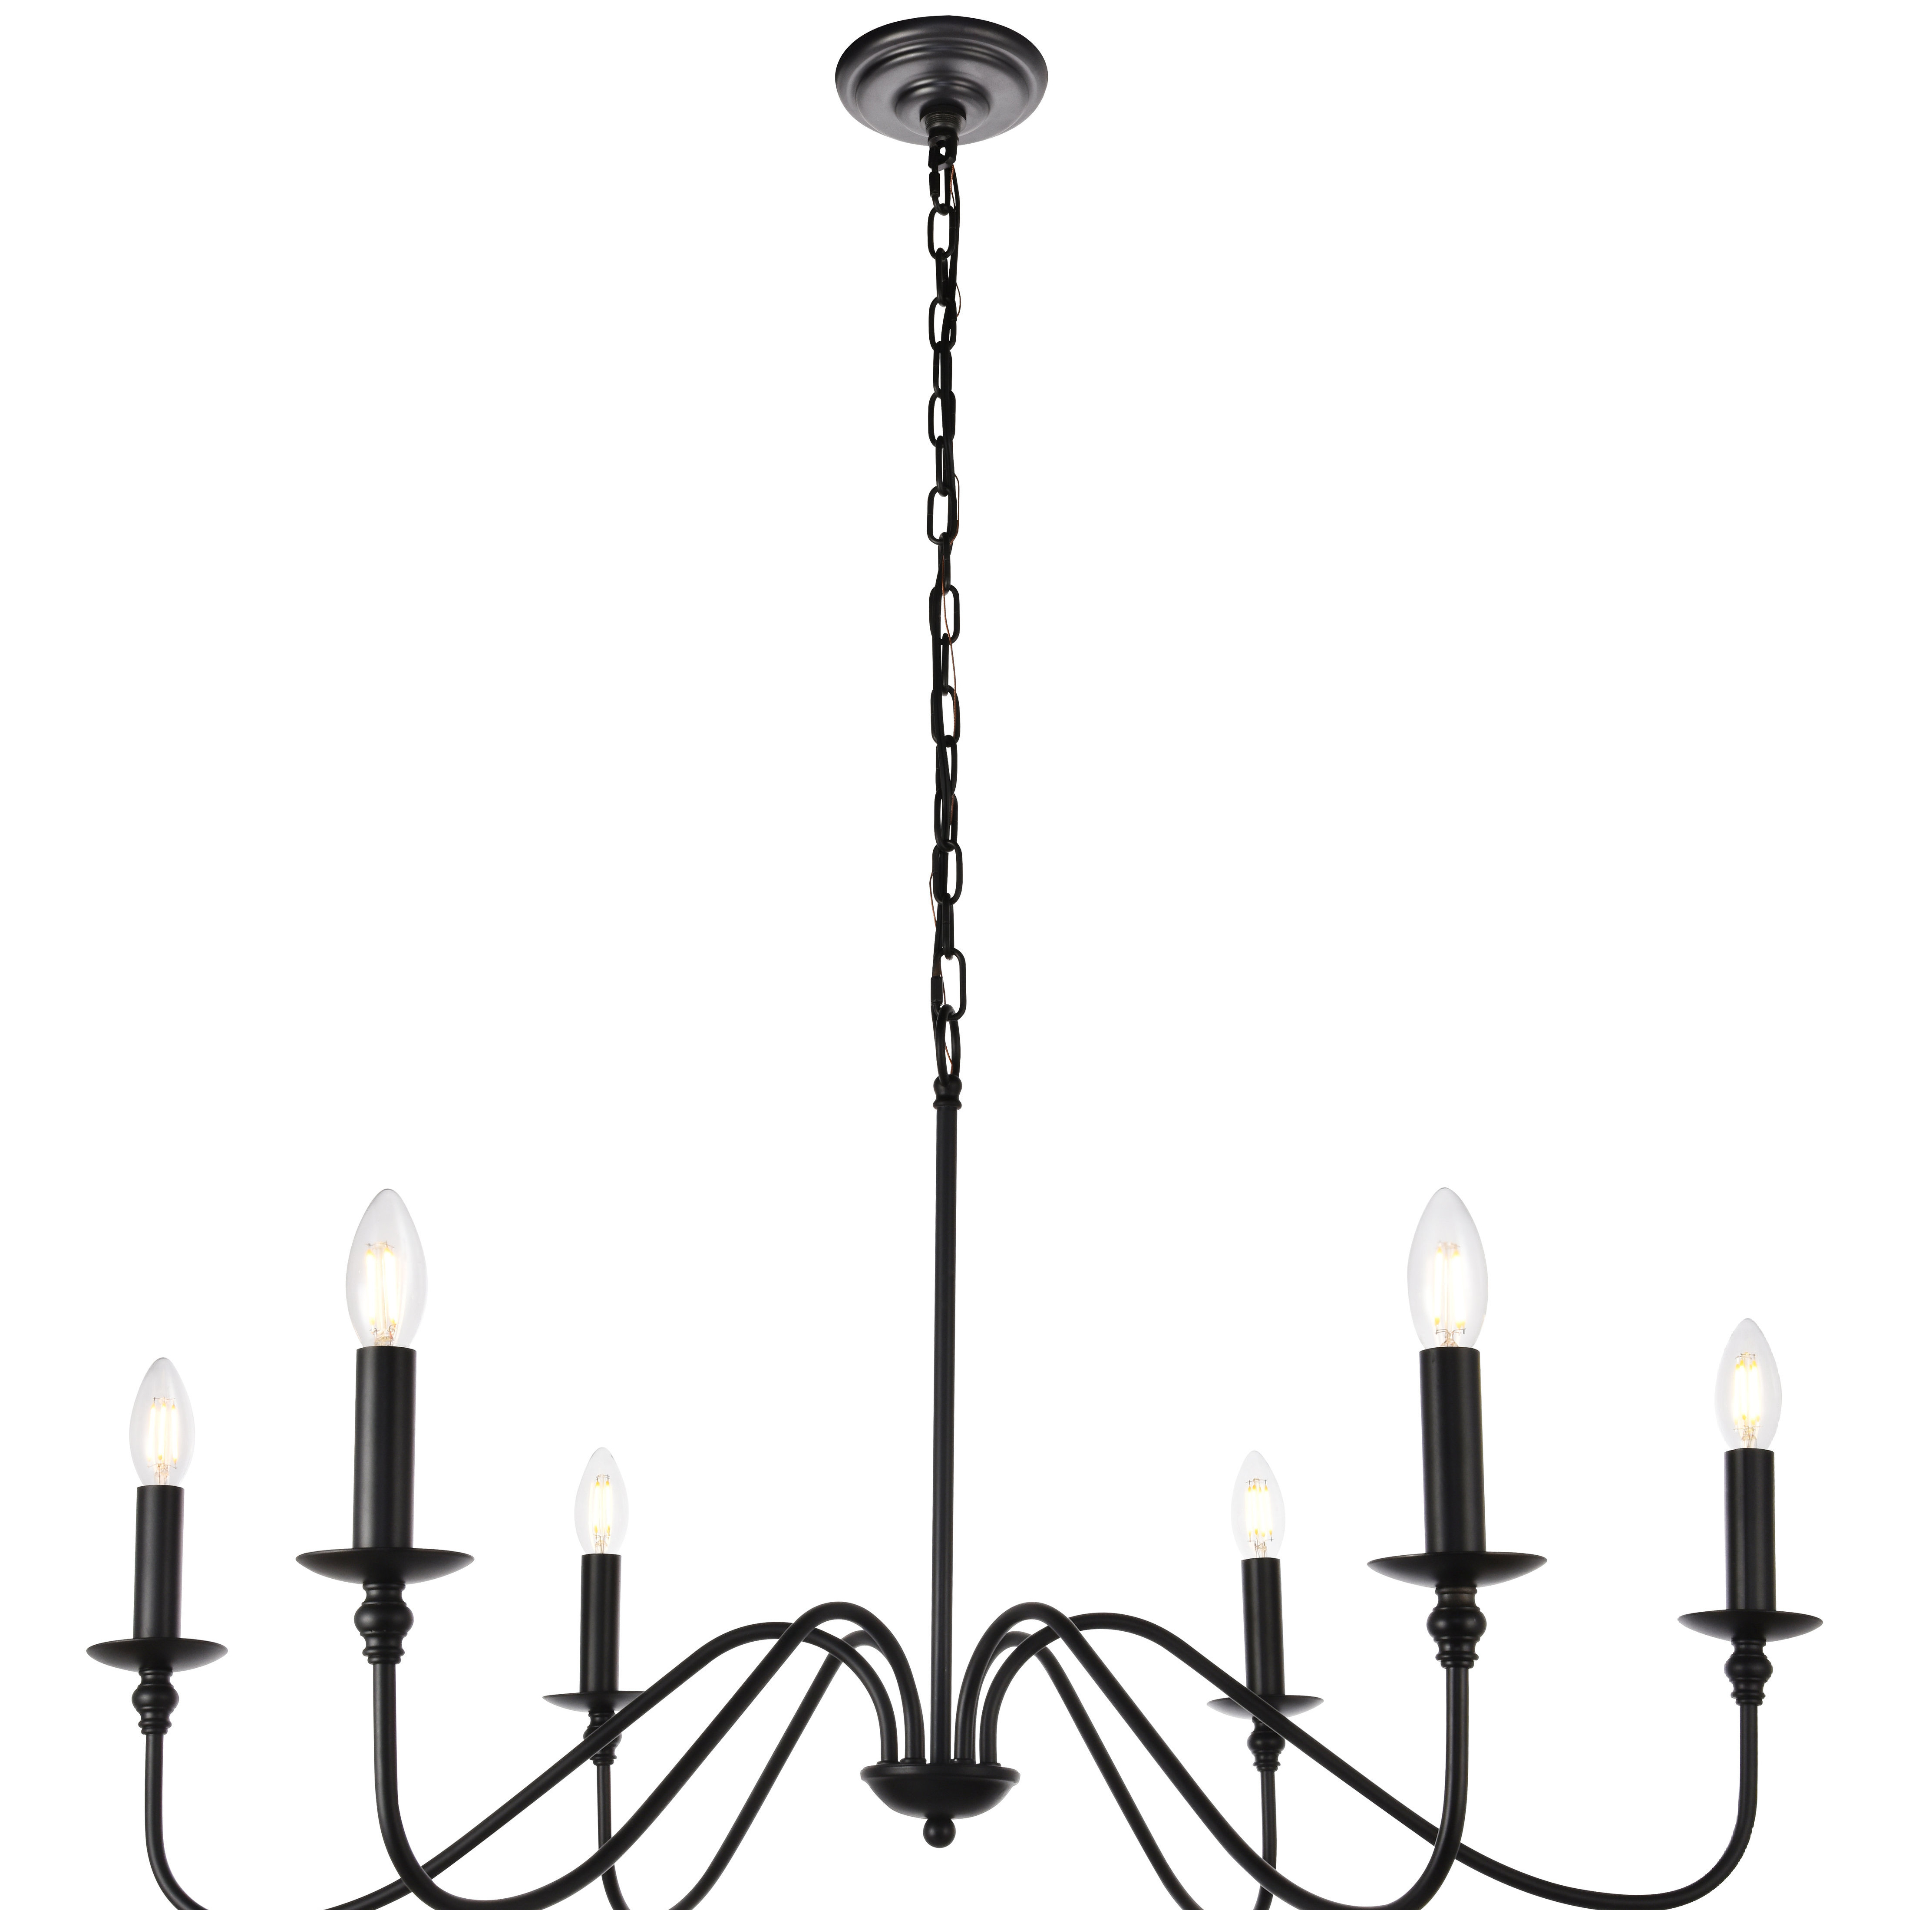 Perseus 6 Light Candle Style Chandeliers Inside 2020 Hamza 6 Light Candle Style Chandelier (Gallery 9 of 20)